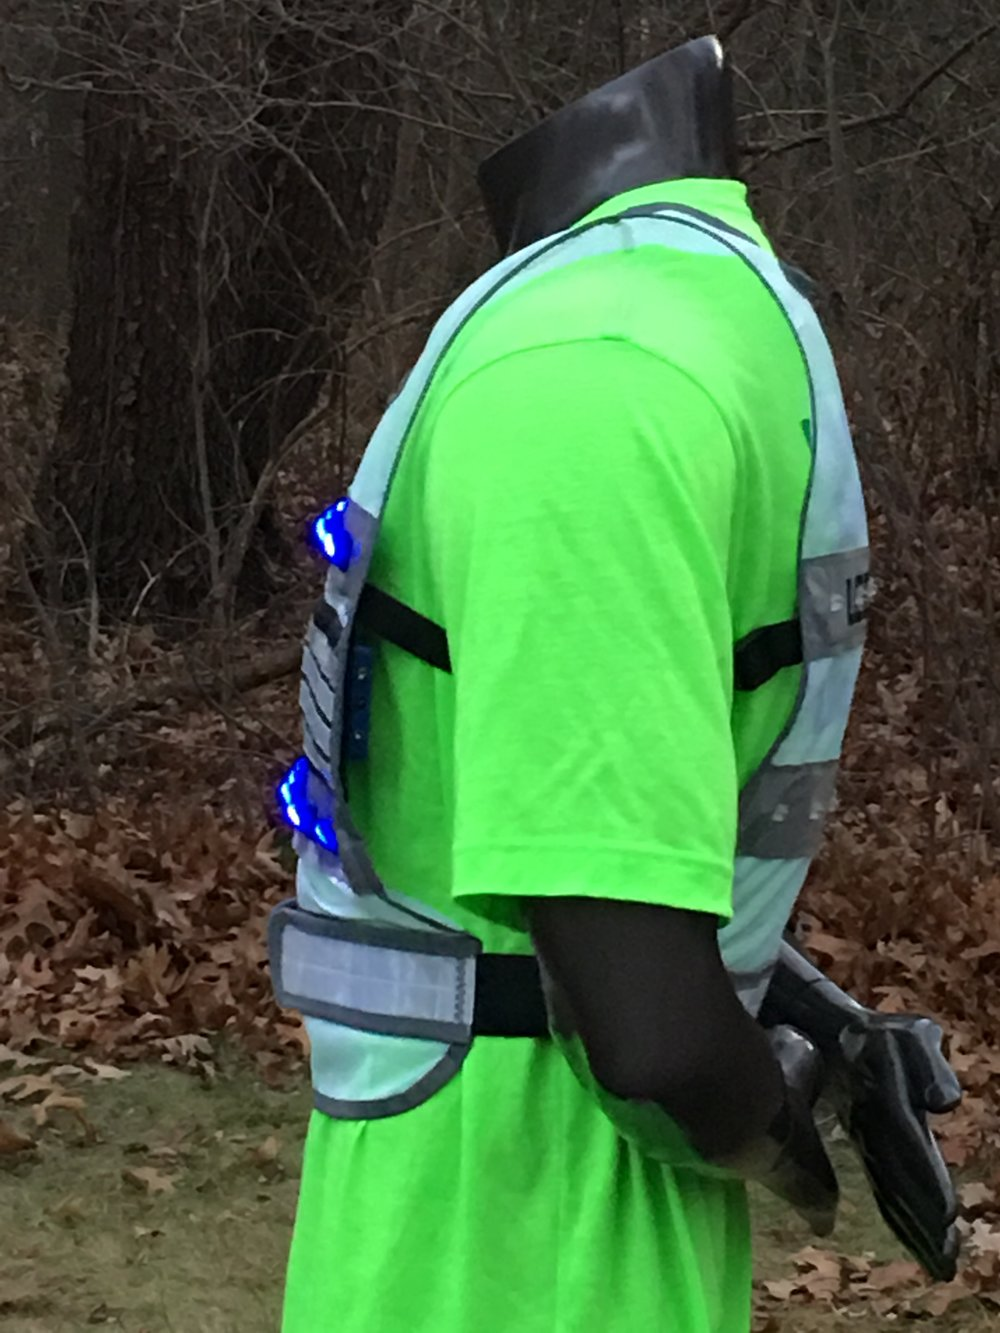 LEDLightVest-strap-safety-vest-experts----Grand Rapids-MI.JPG